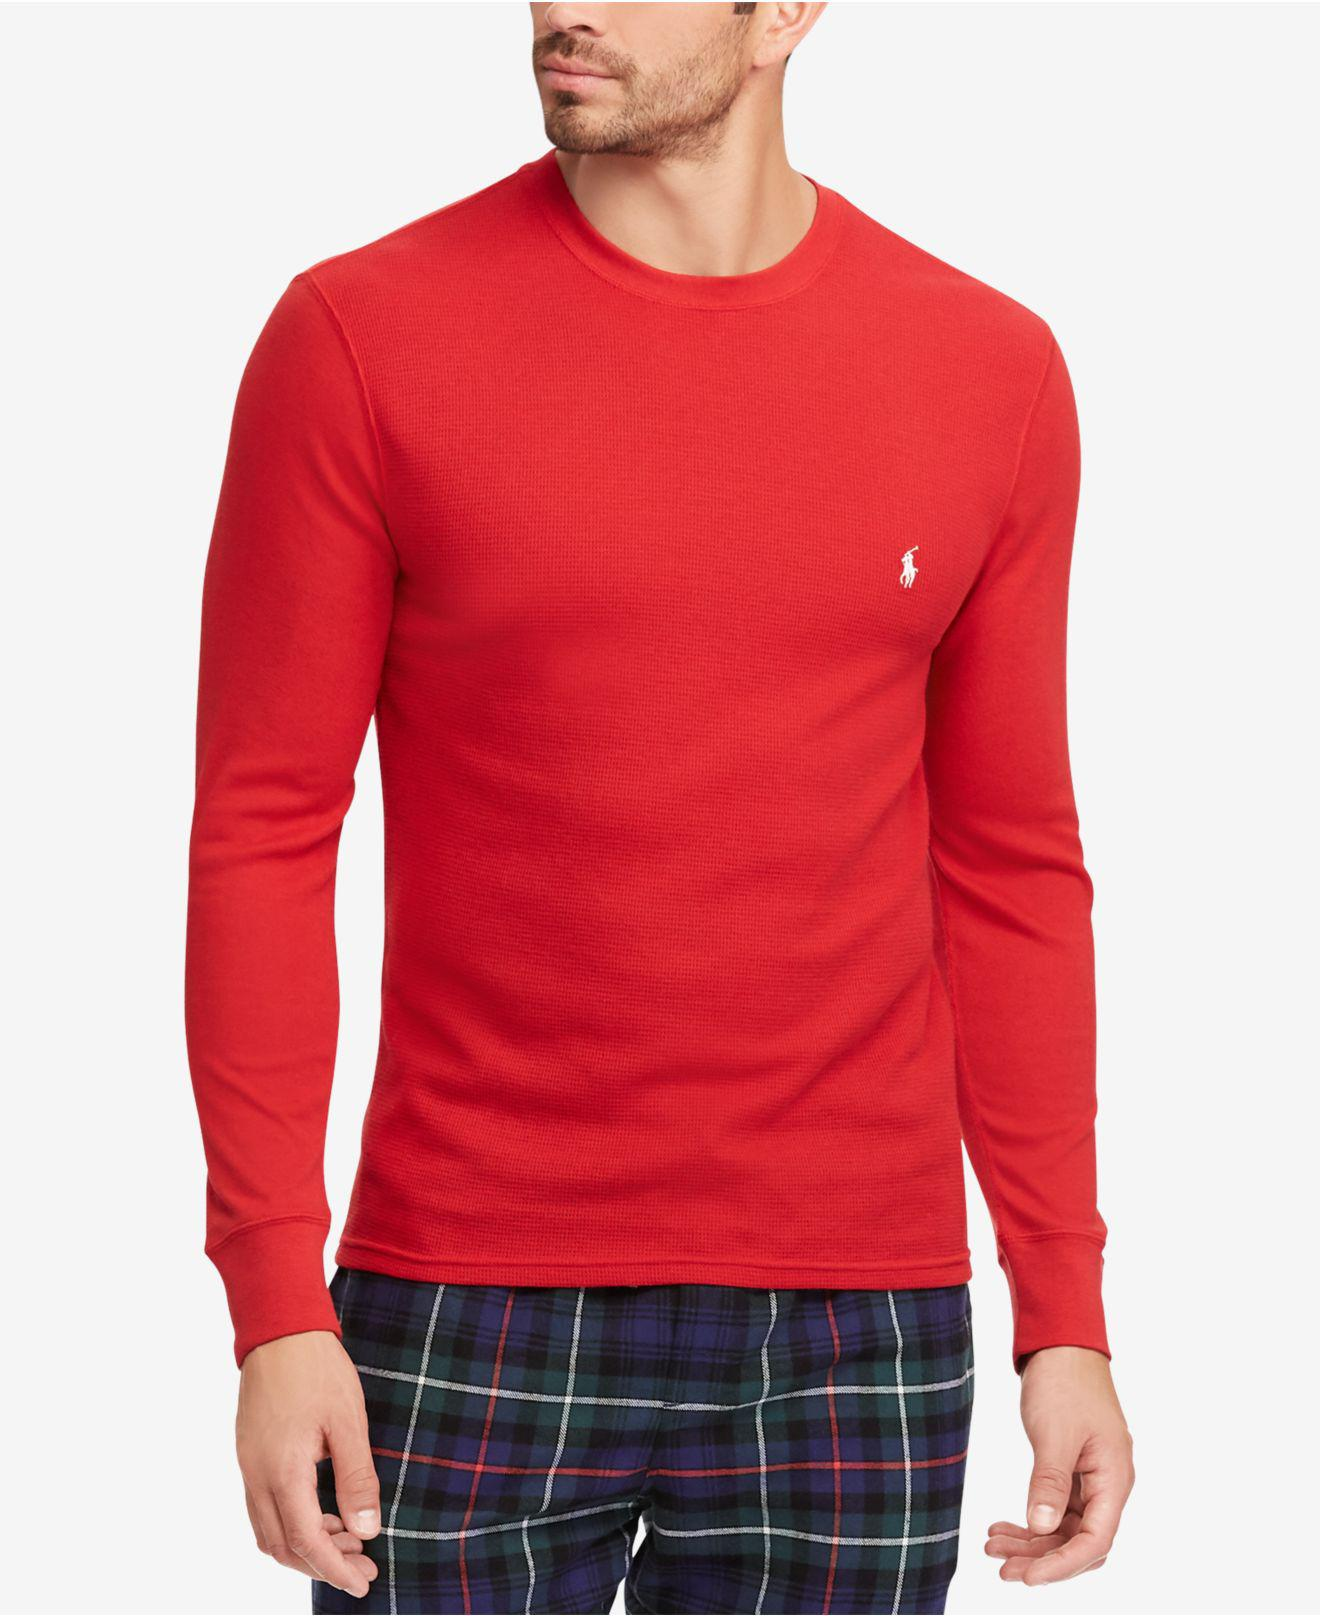 702f31ce Lyst - Polo Ralph Lauren Waffle-knit Thermal in Red for Men